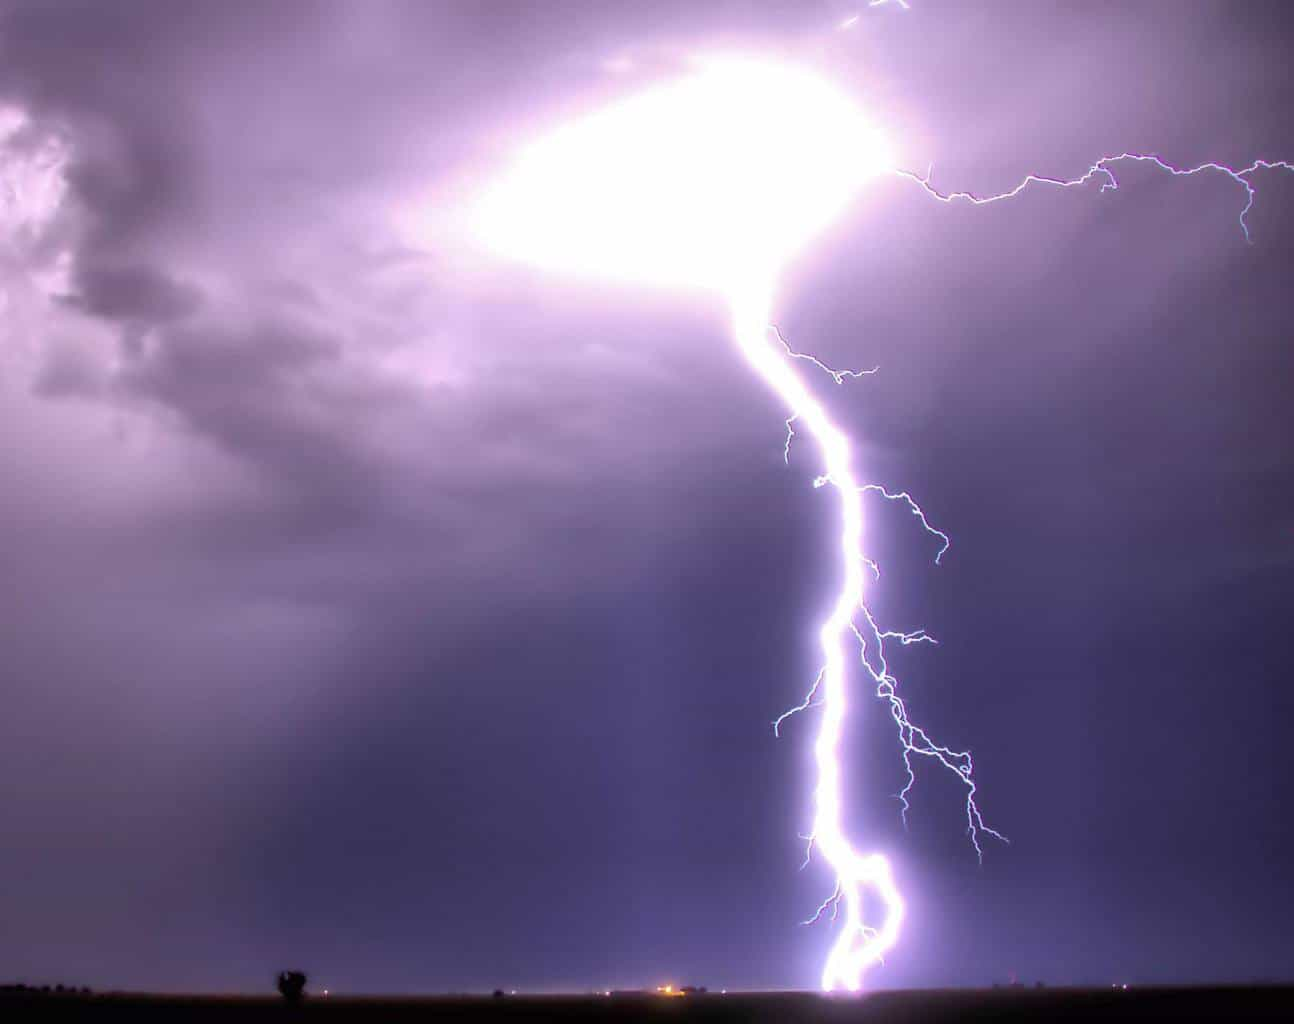 A fairly close CG strike from August 25 of this year. Shot 7 miles East of Tahoka Texas on Highway 380.